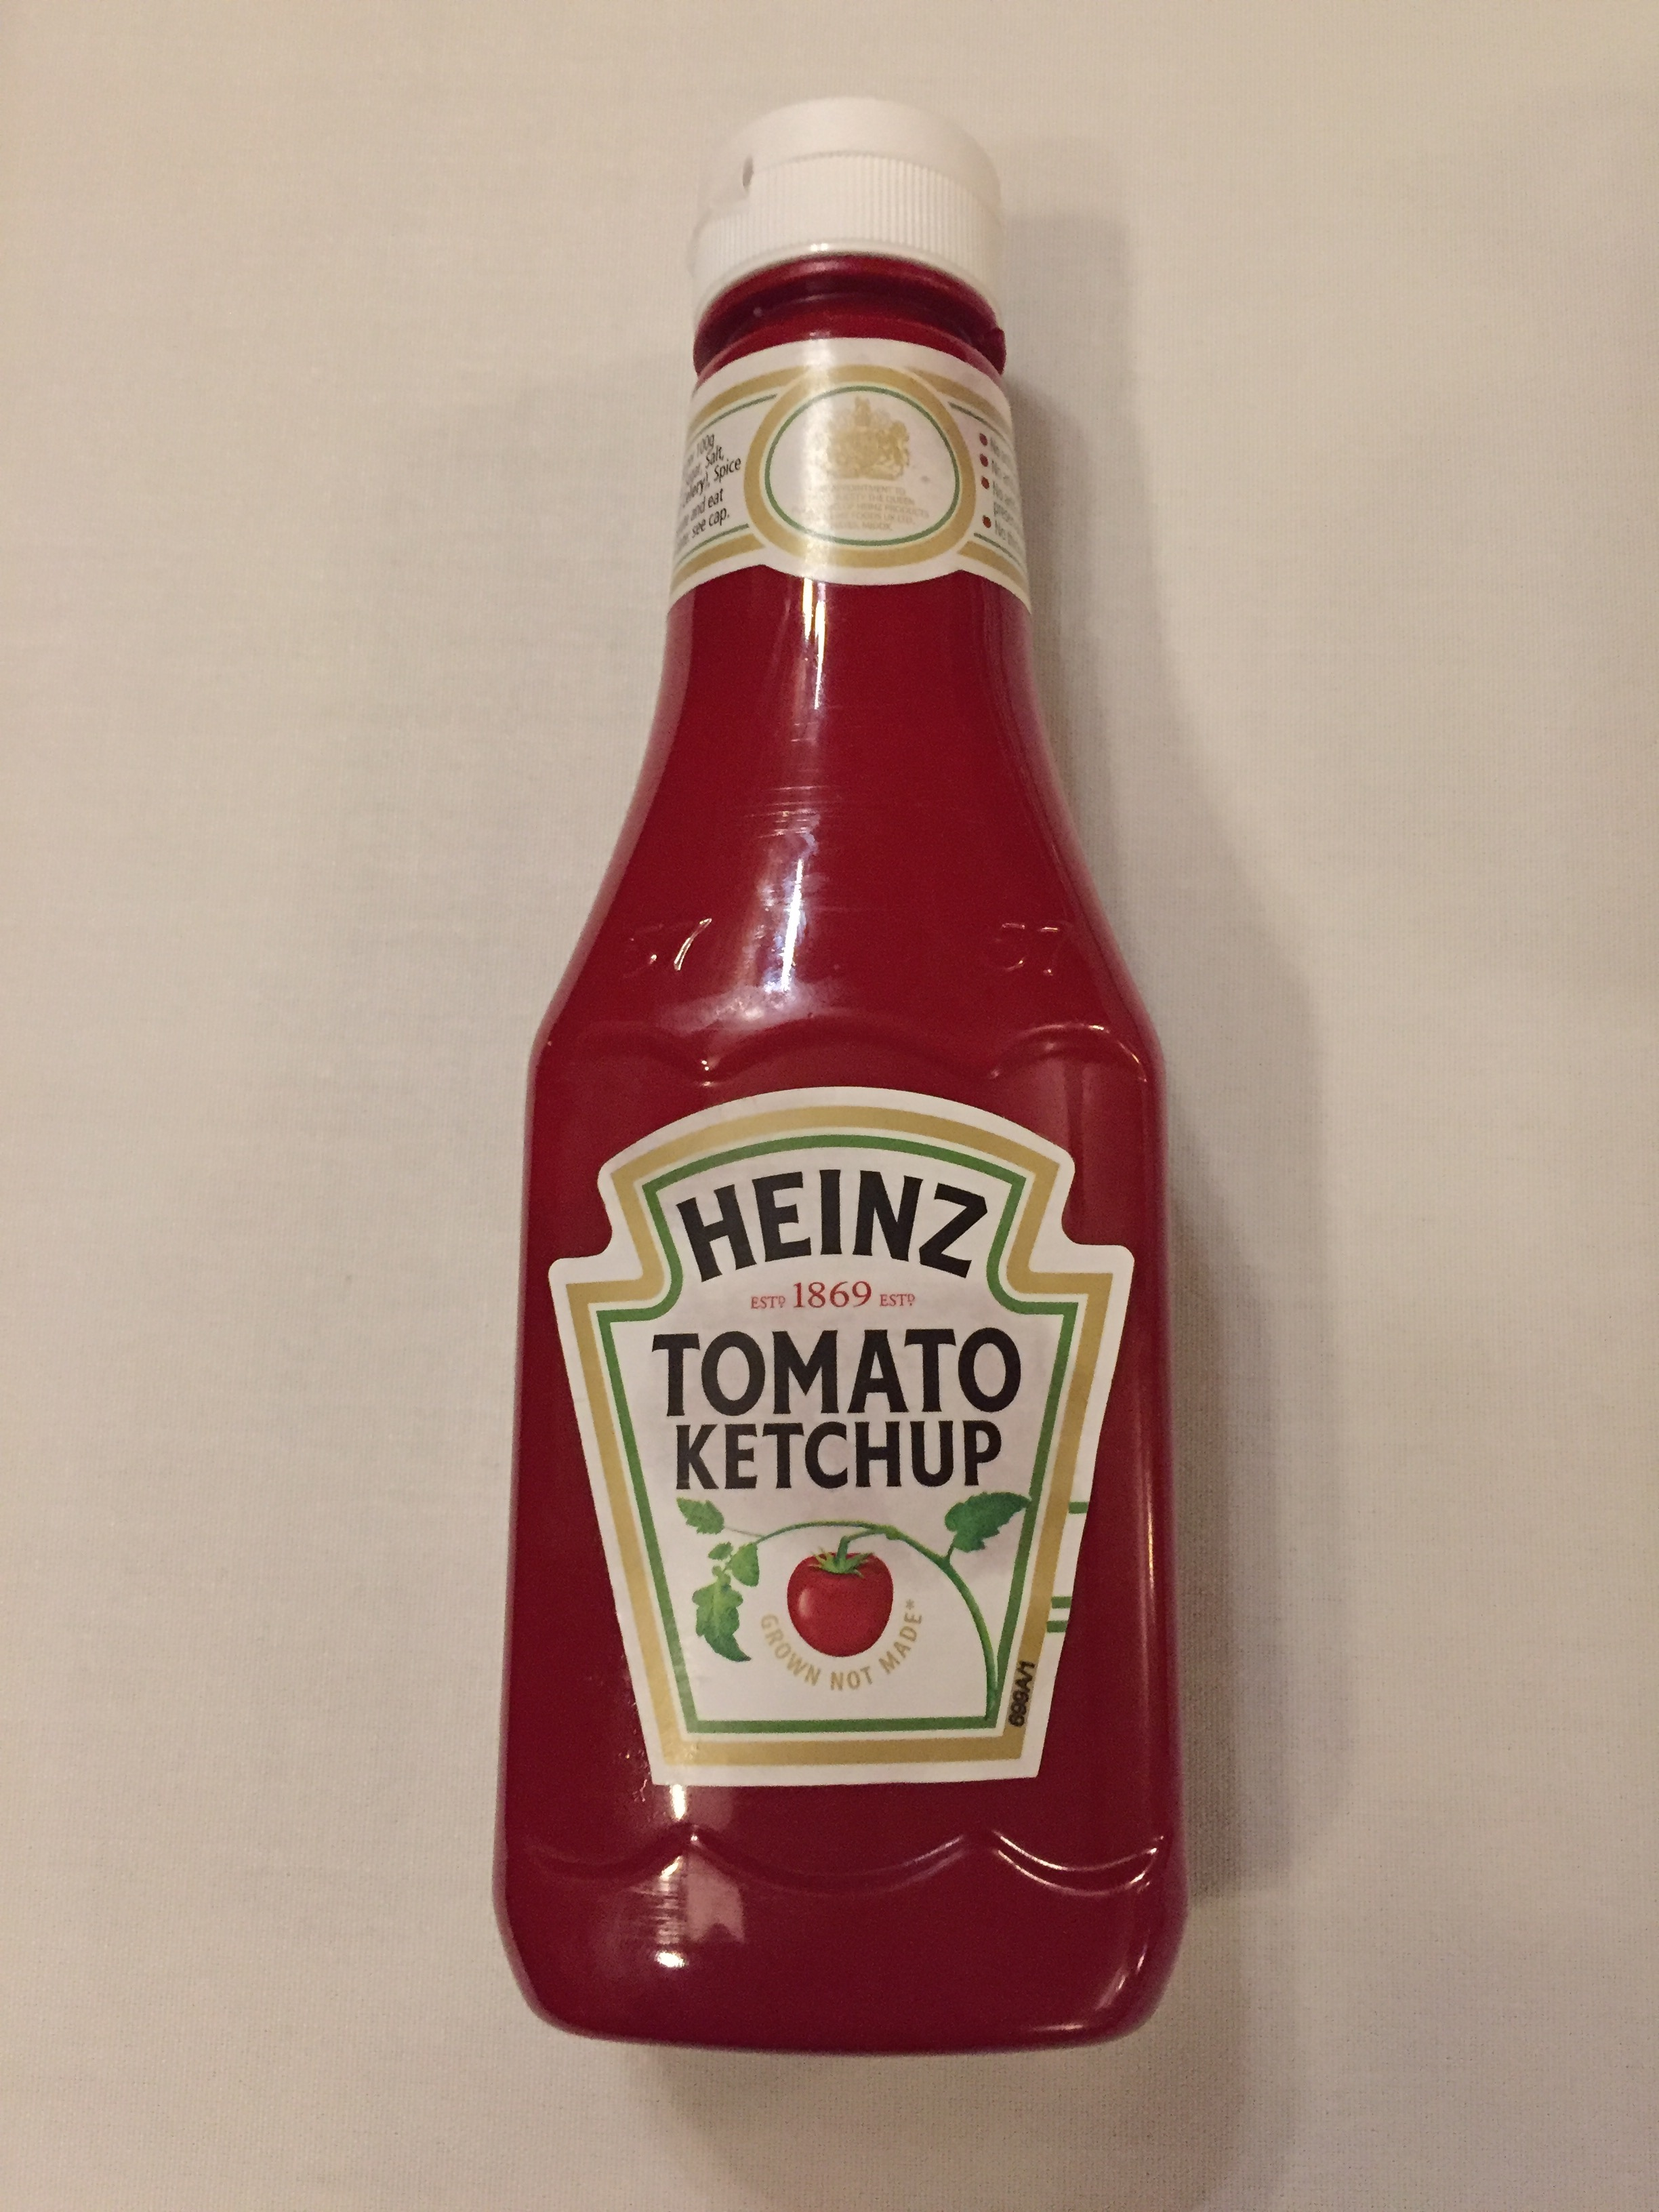 Ketchup may need to be stored in the fridge